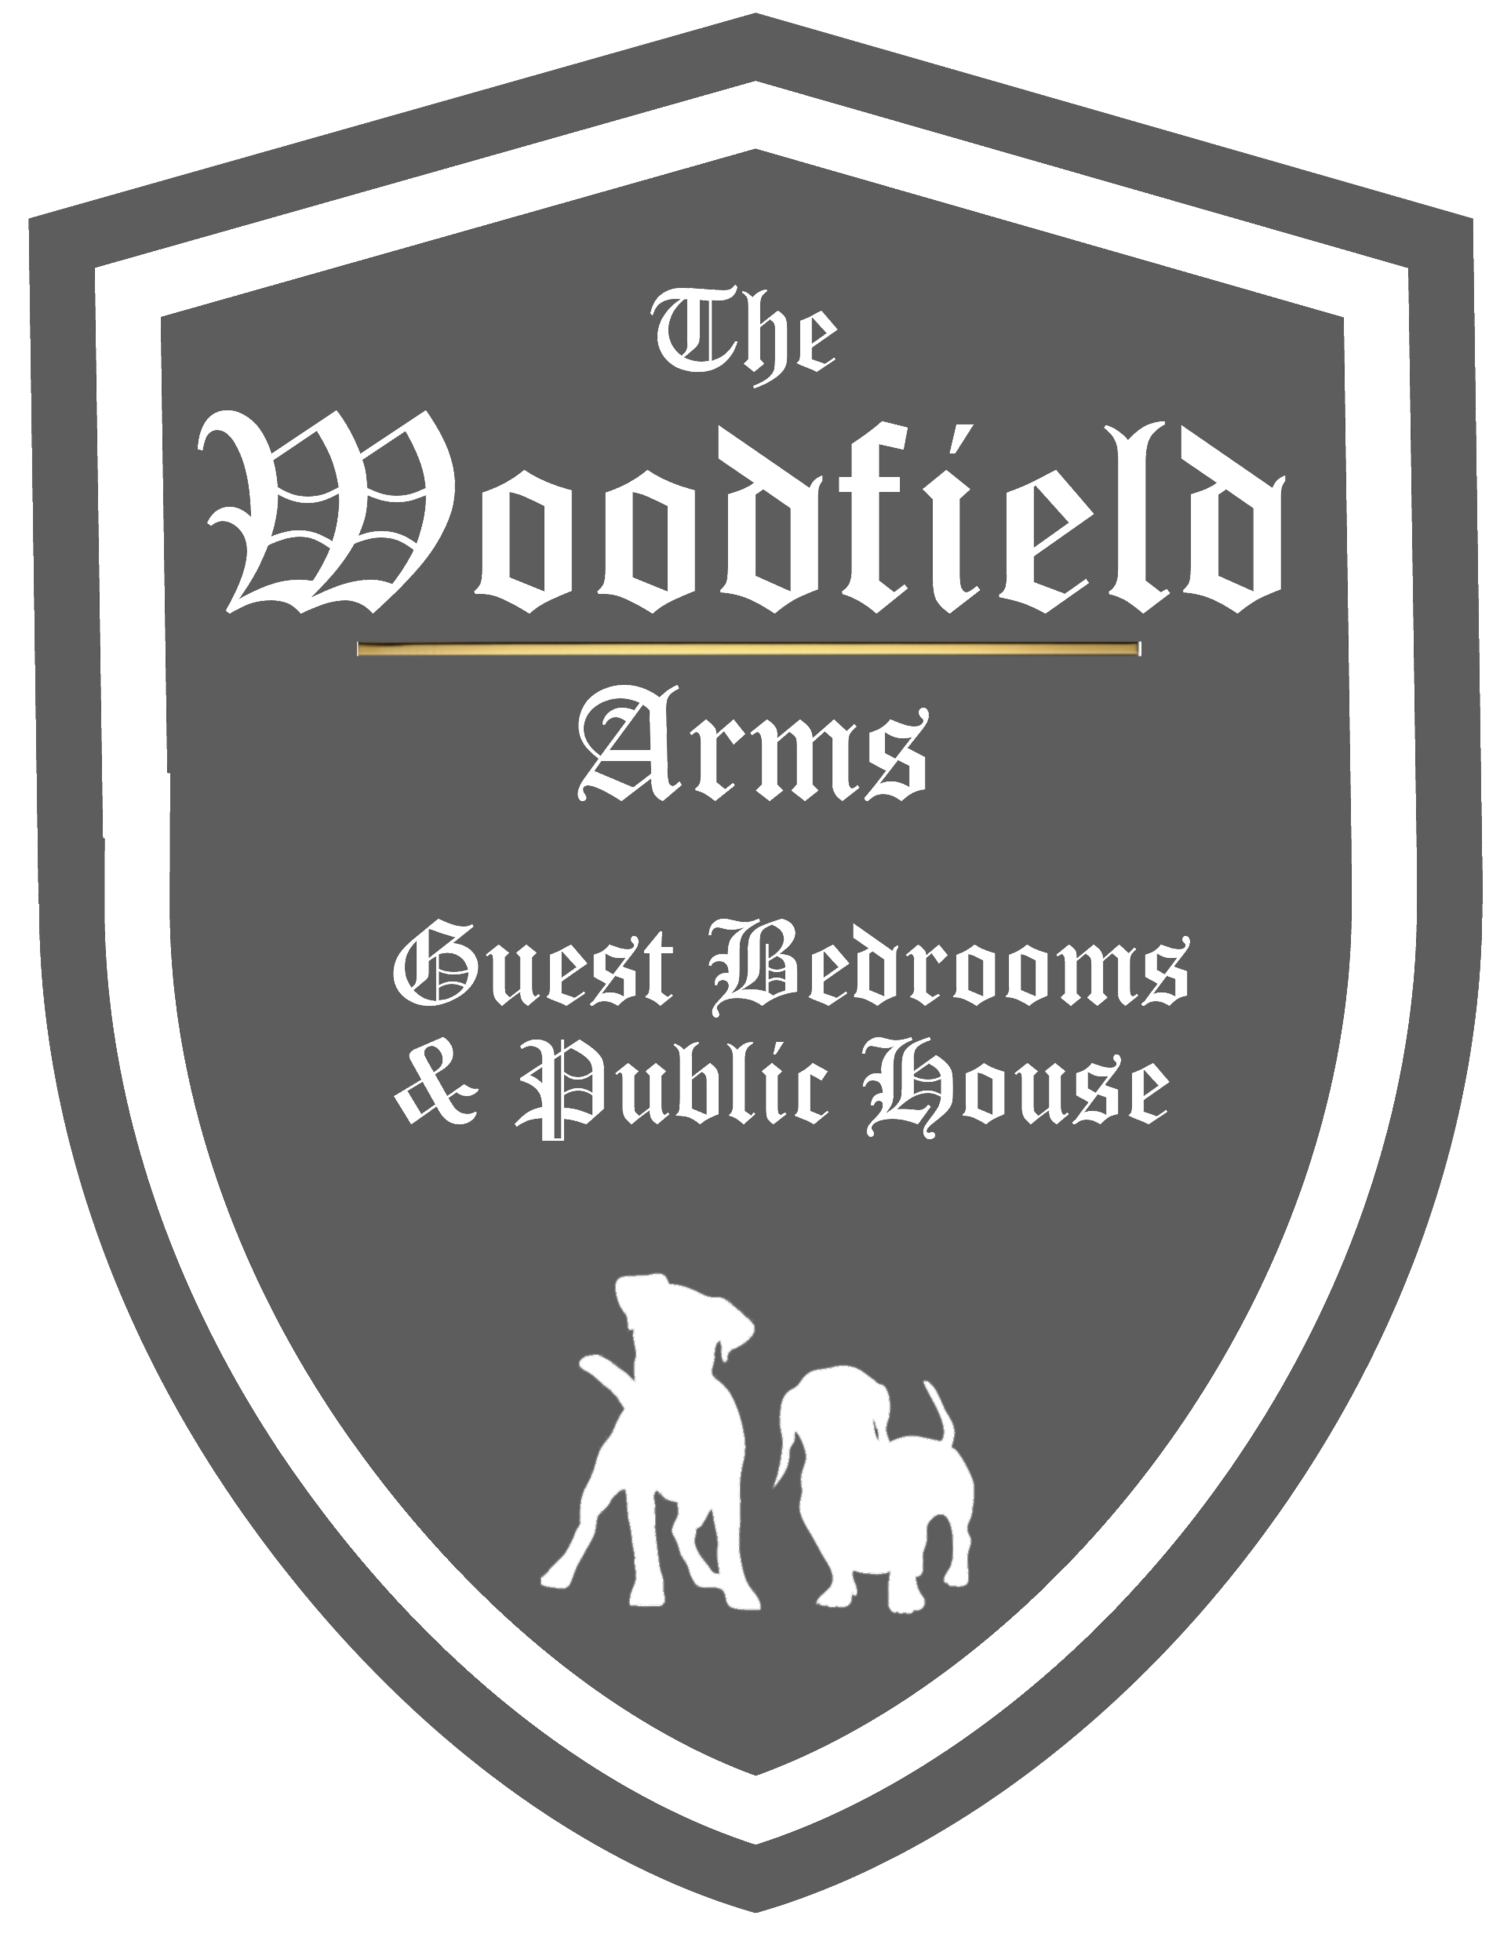 The Woodfield Arms